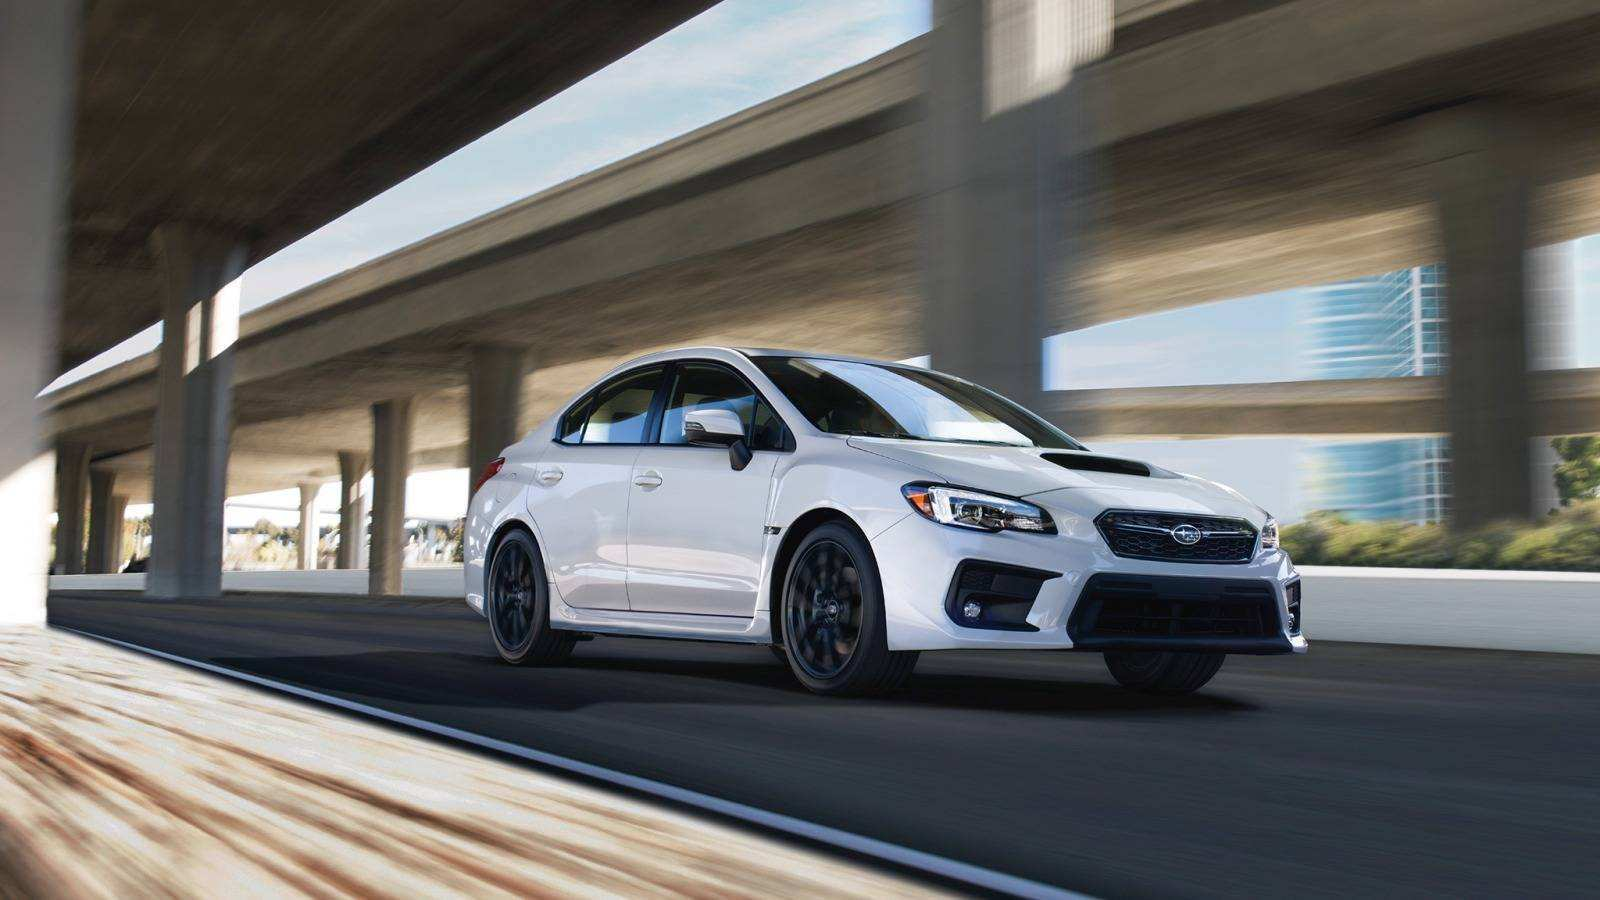 57 All New 2019 Subaru Wrx Sti Hatch Pricing by 2019 Subaru Wrx Sti Hatch